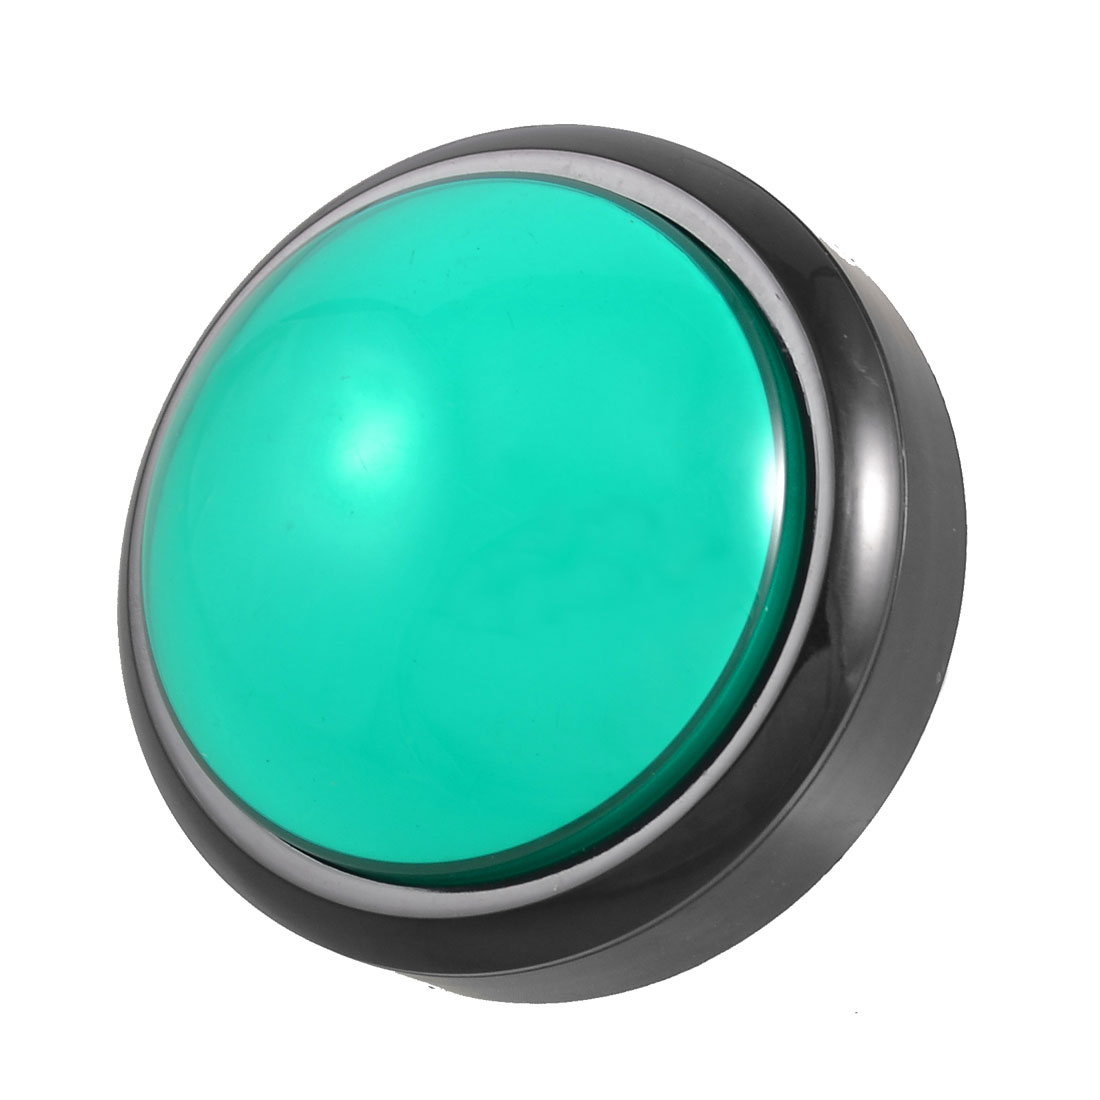 Arcade Game AC 250V 3A SPST 79mm Dia Green Cap Push Button Switch